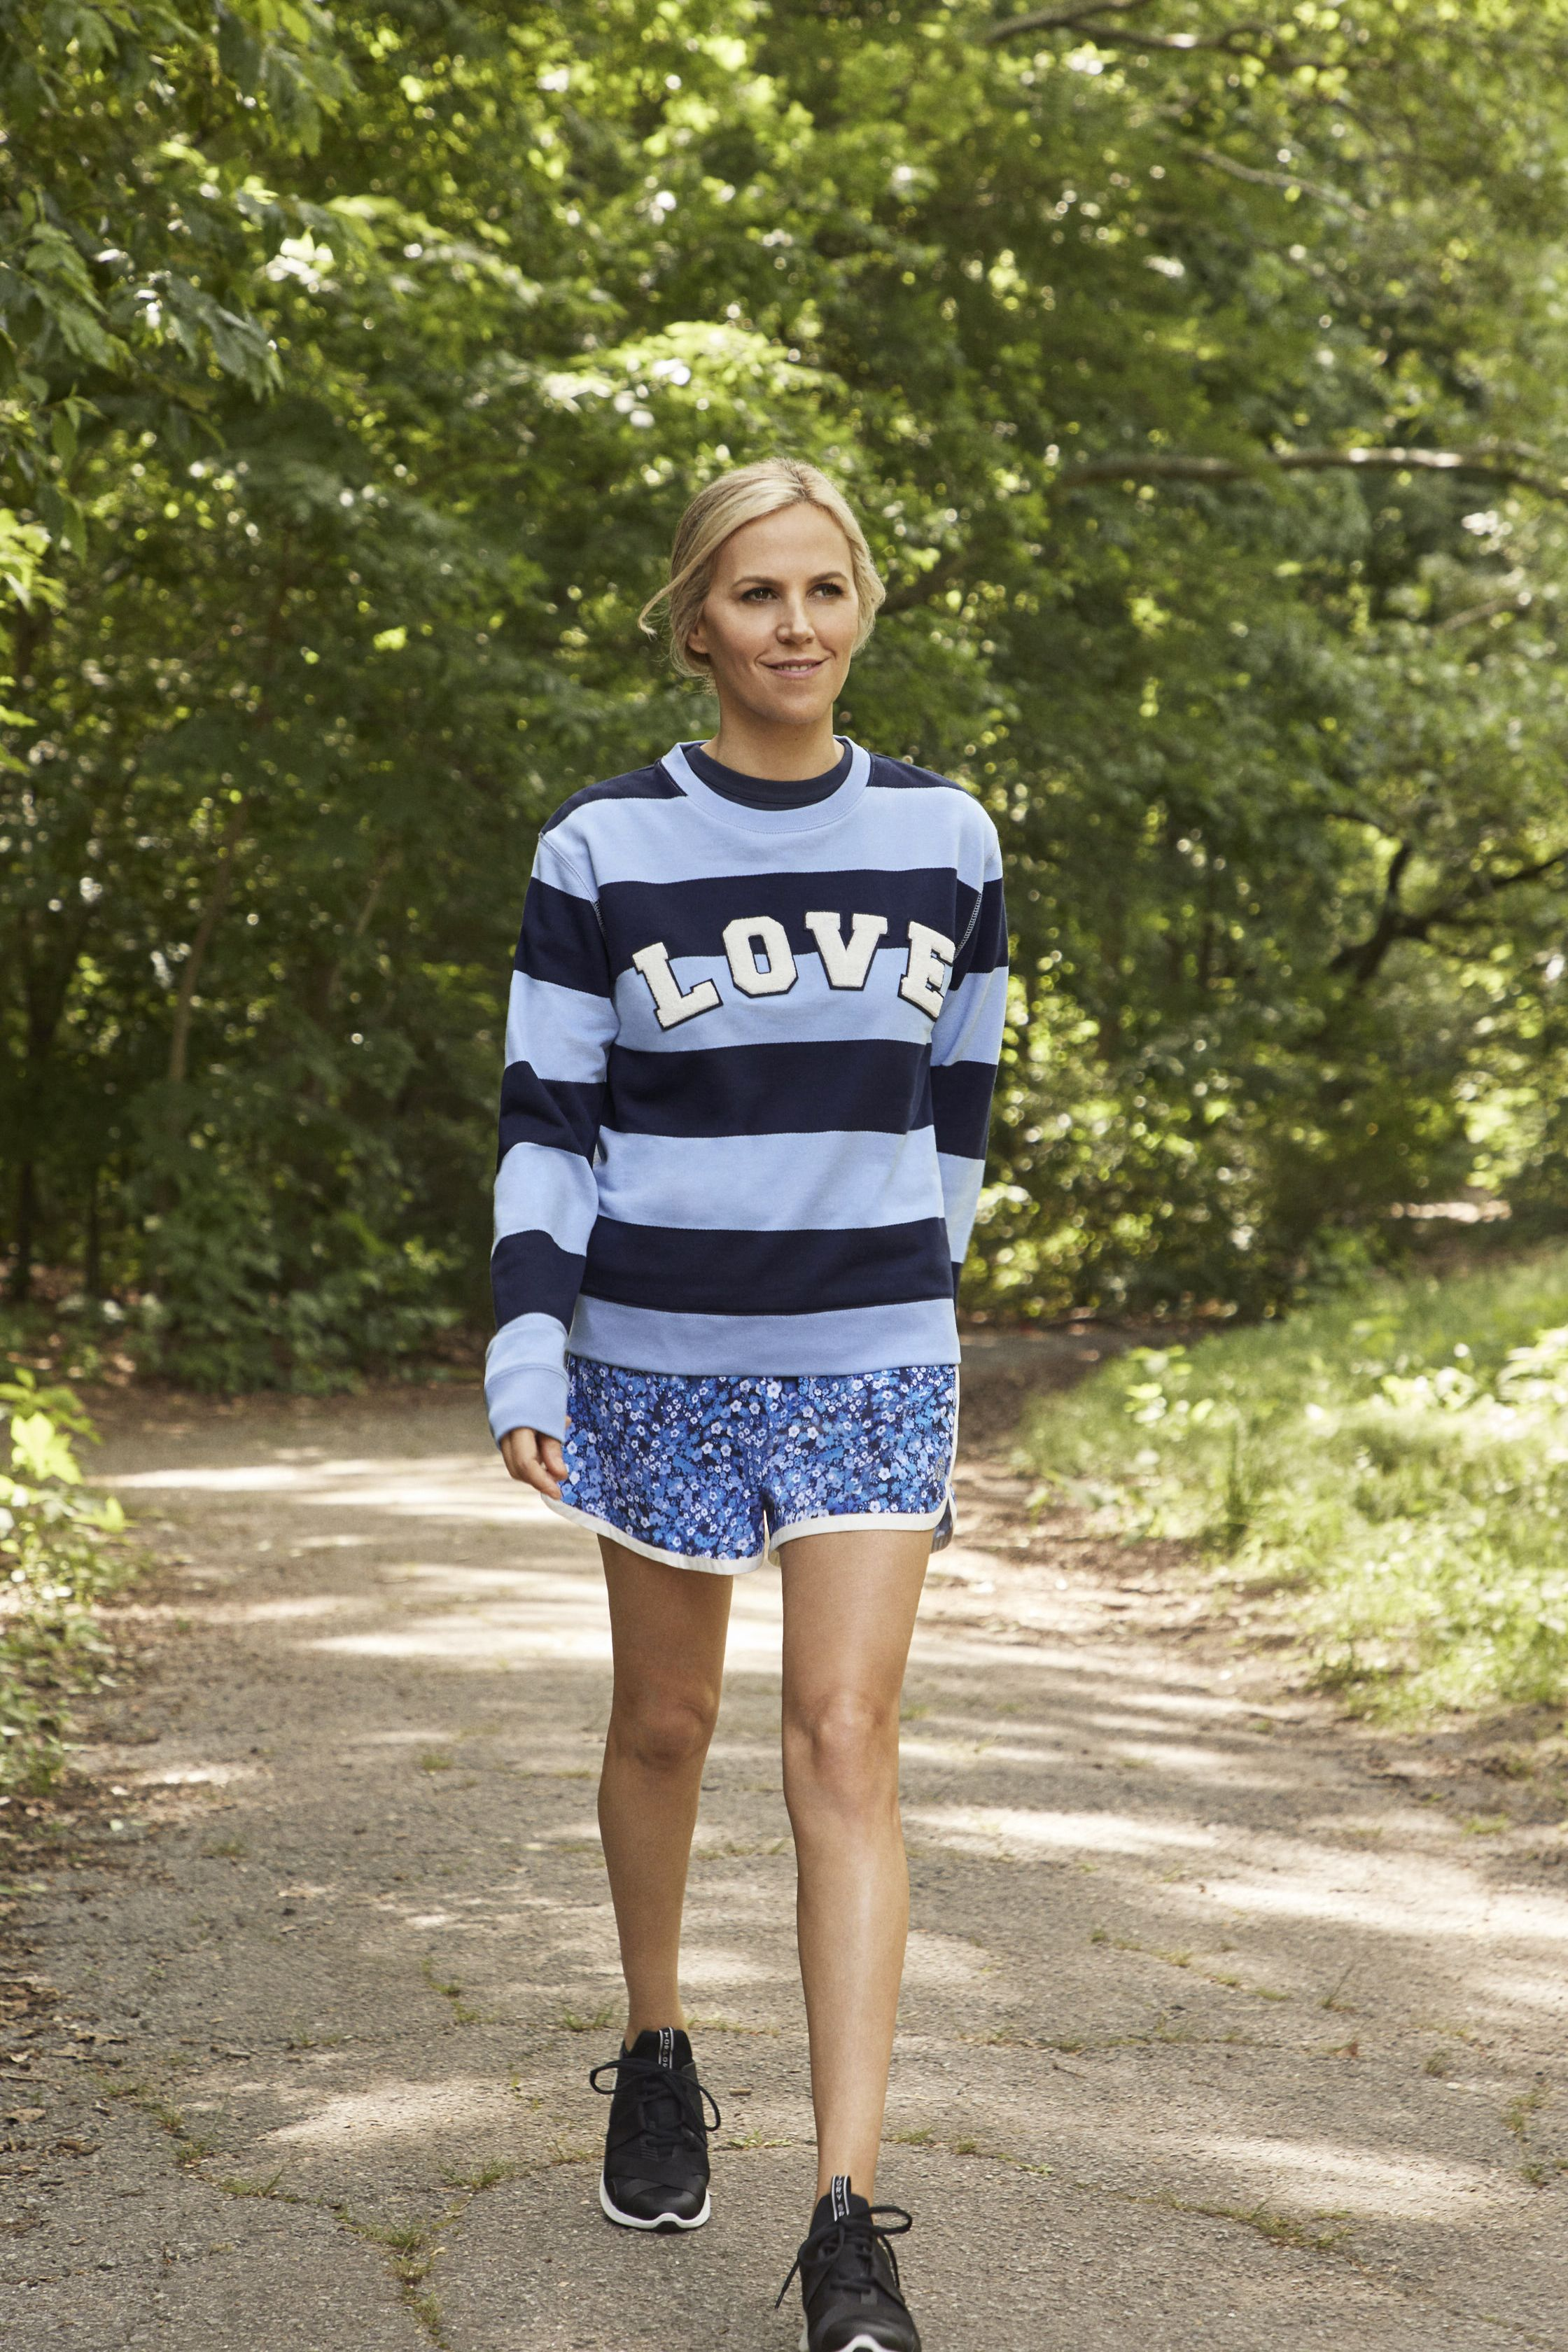 11c5ab405b23 Tory Burch walking in Central Park